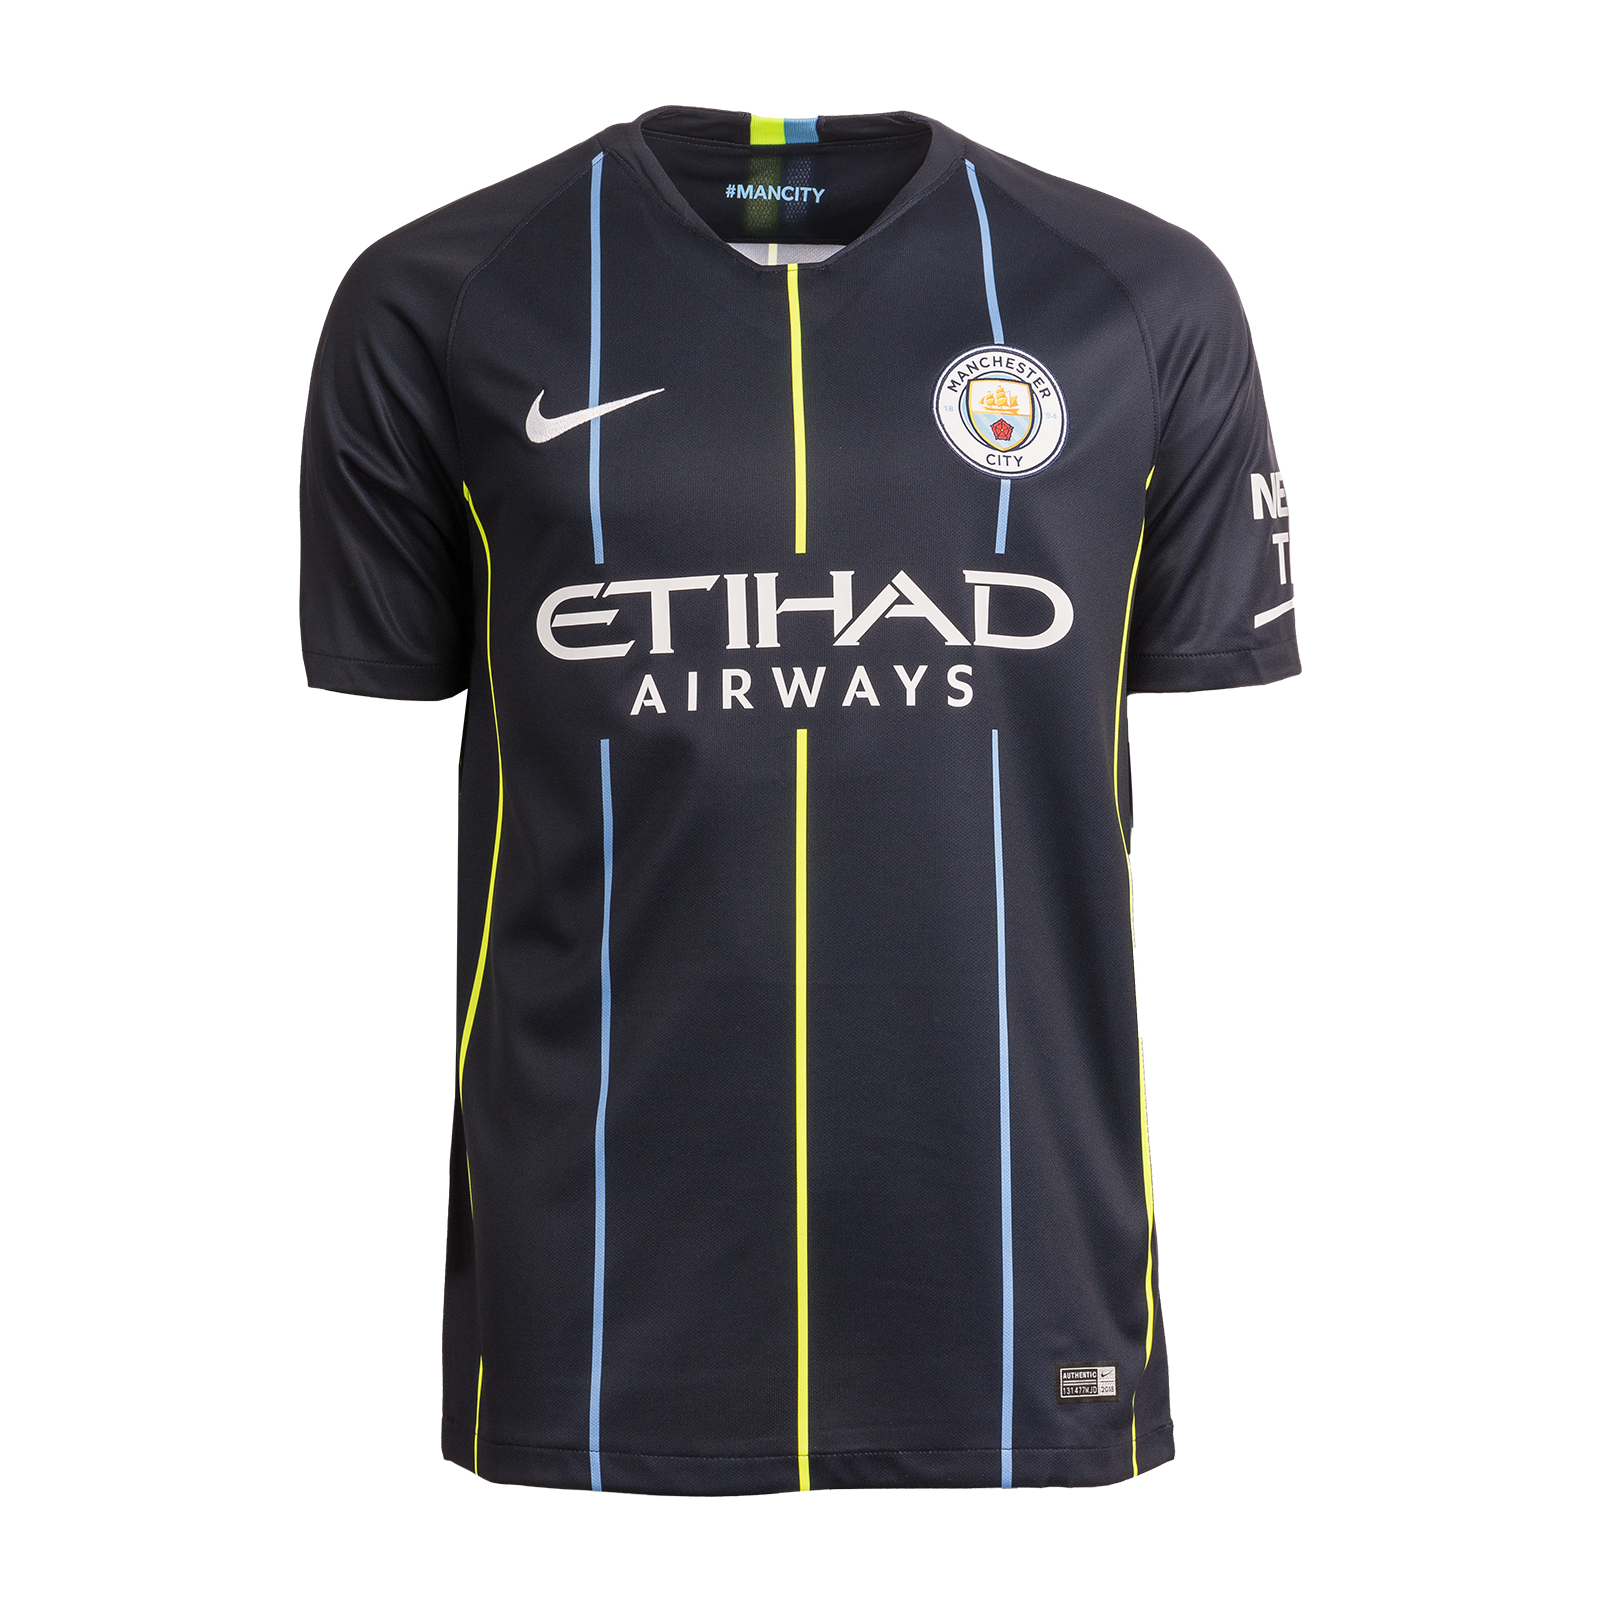 Pin By Afc Oldham On Kits We Like That Aren T Orange Manchester City Jersey Shirt Manchester City Football Club